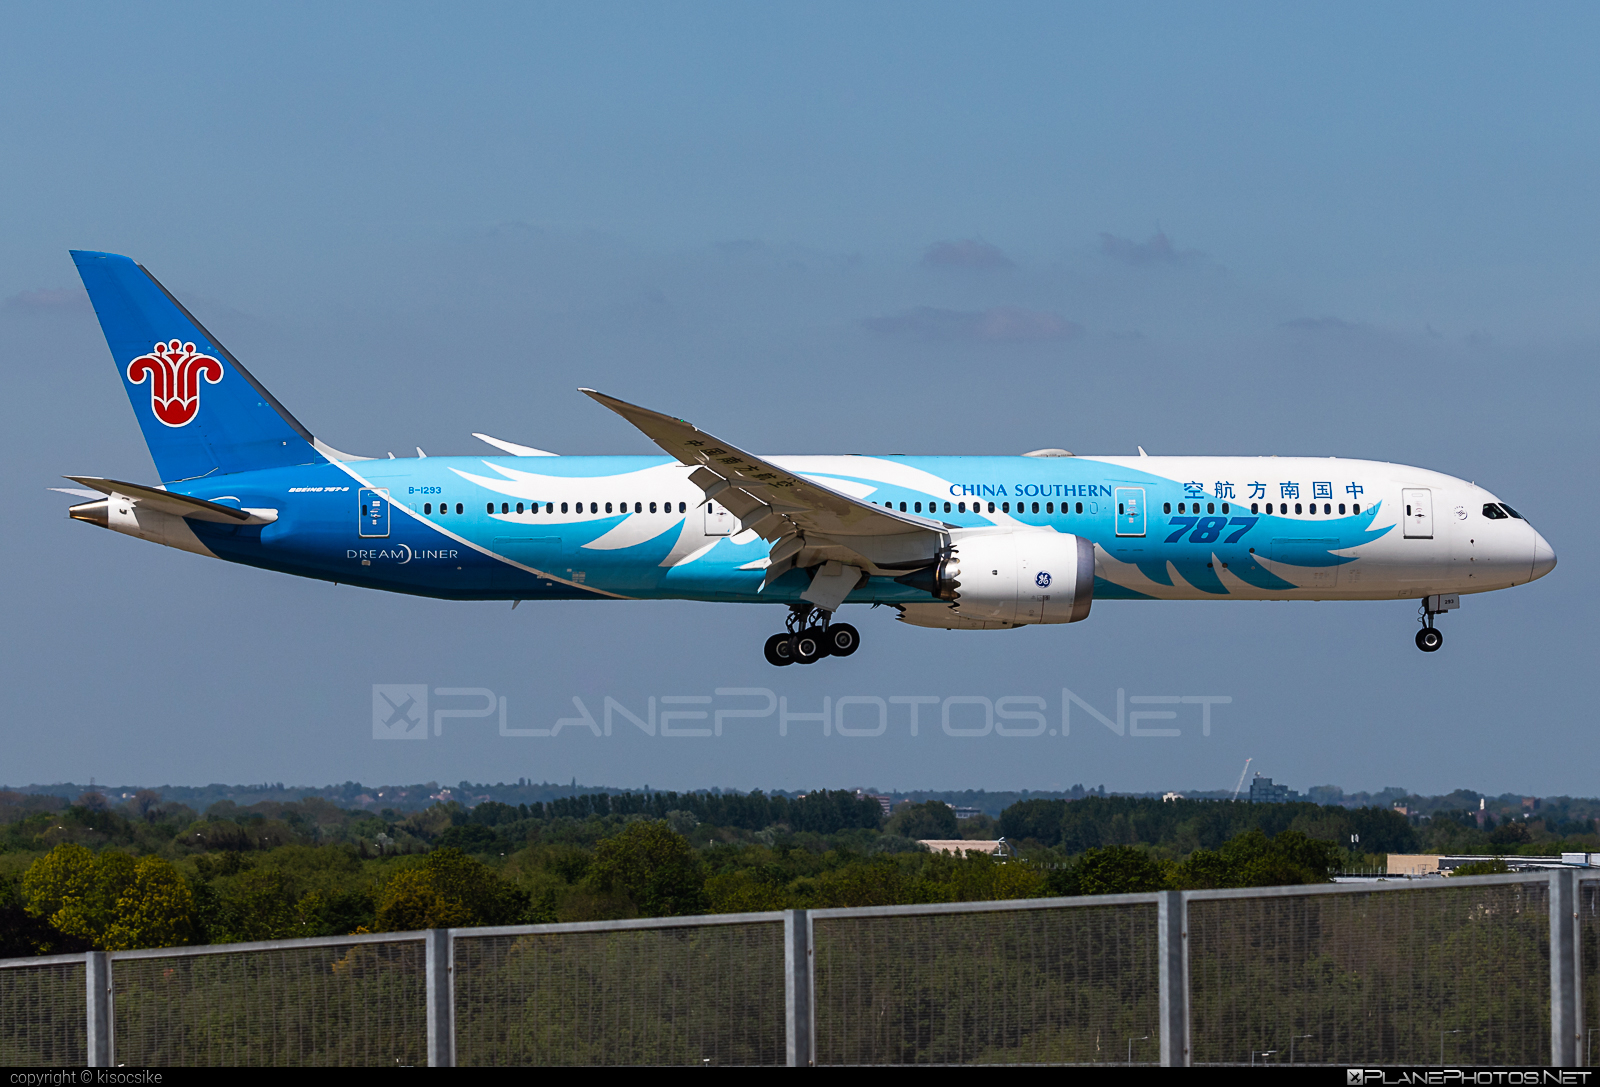 Boeing 787-9 Dreamliner - B-1293 operated by China Southern Airlines #b787 #boeing #boeing787 #dreamliner